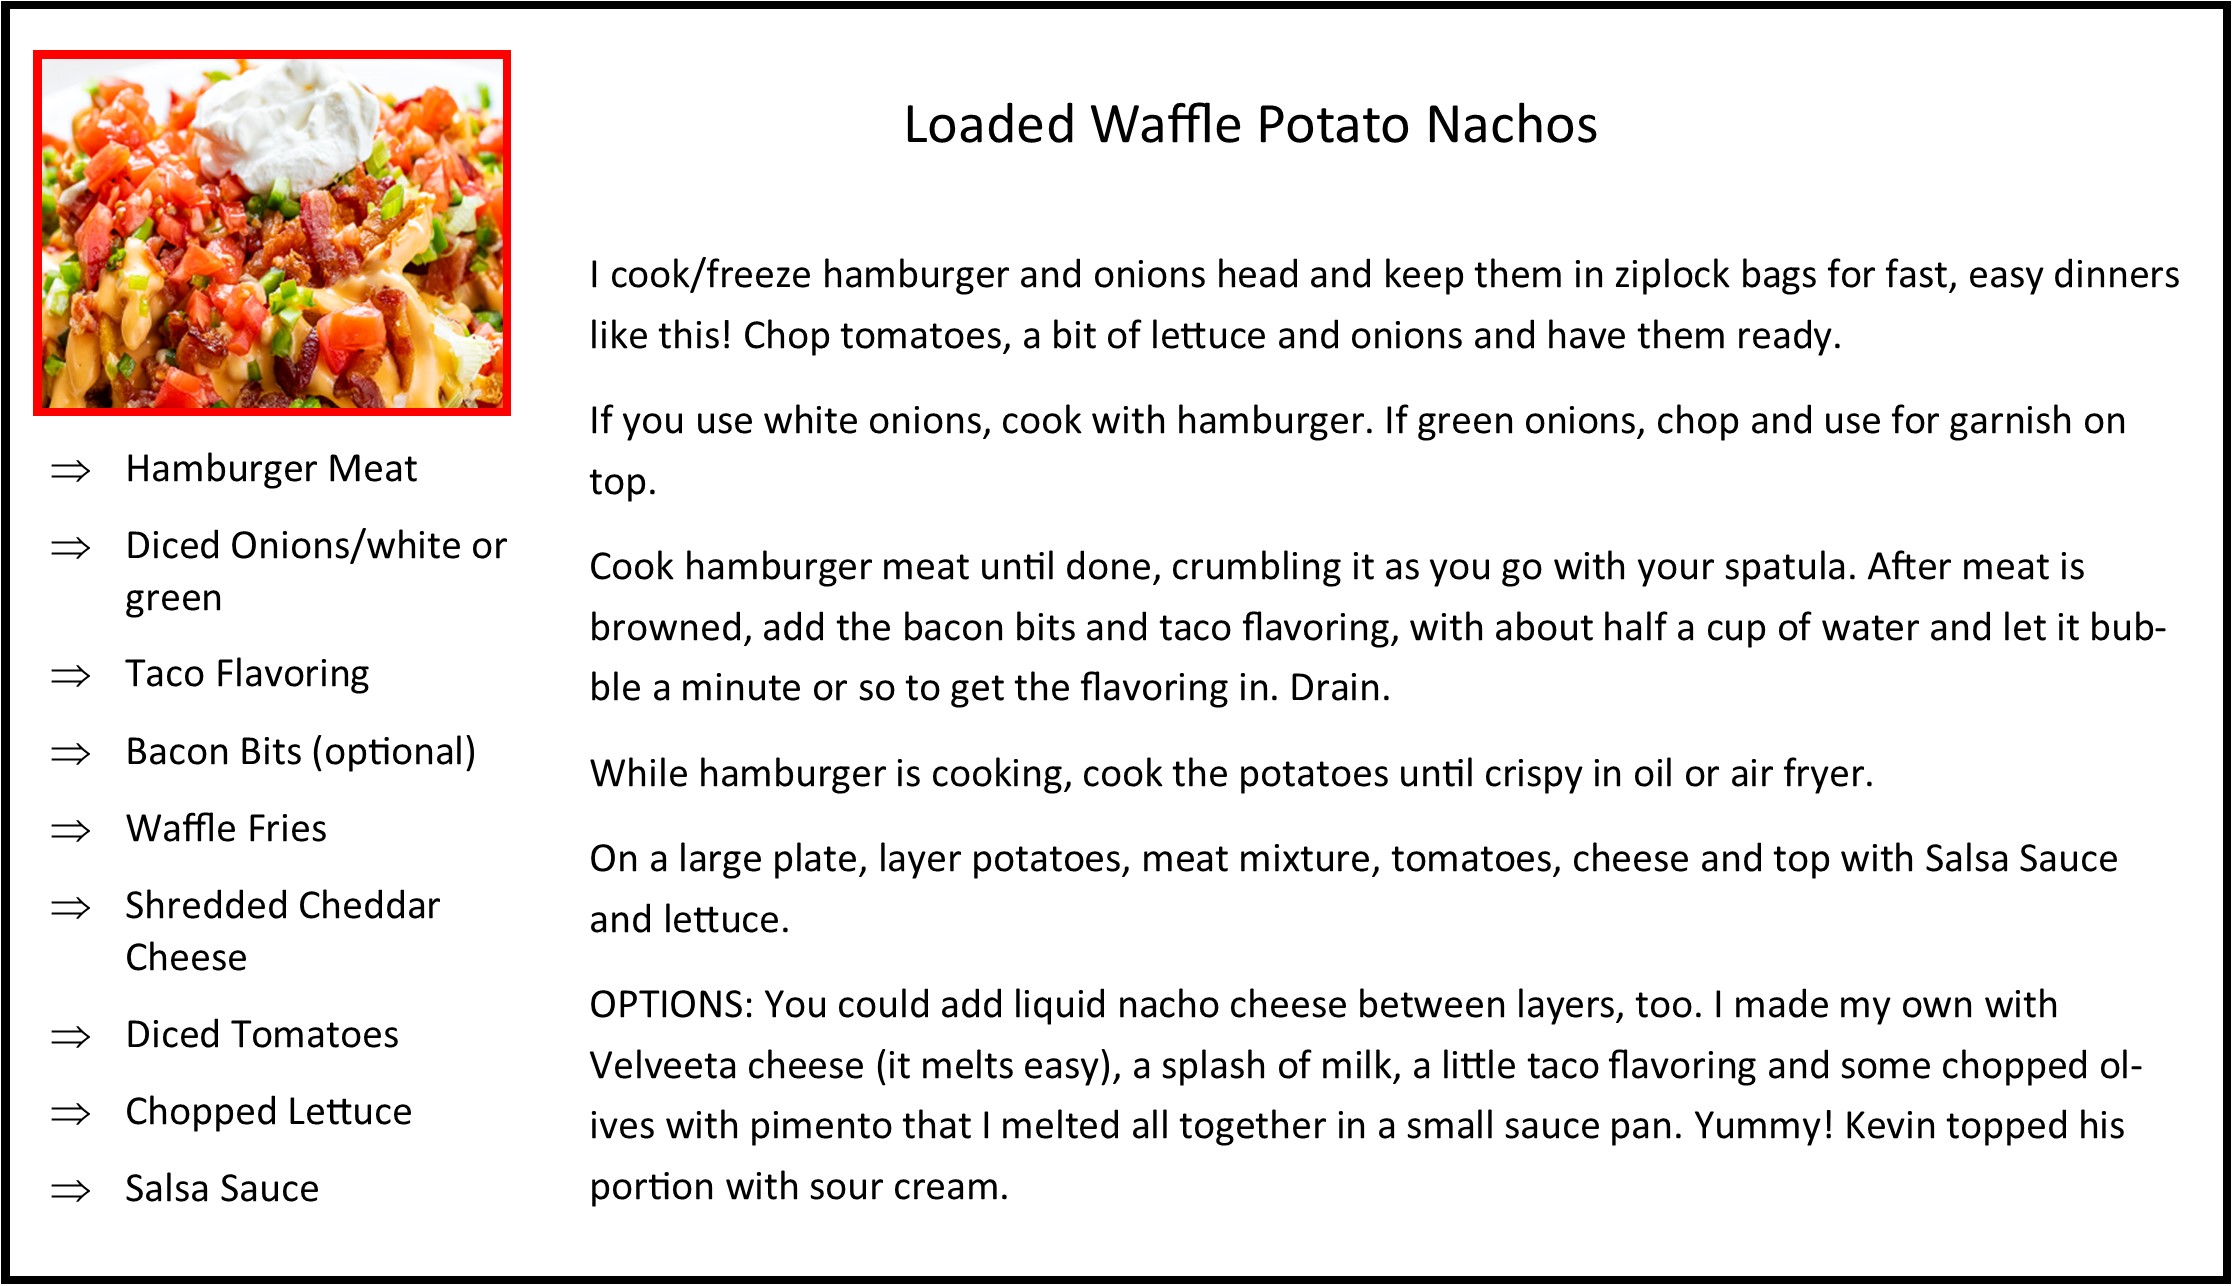 Loaded Waffle Potato Nachos